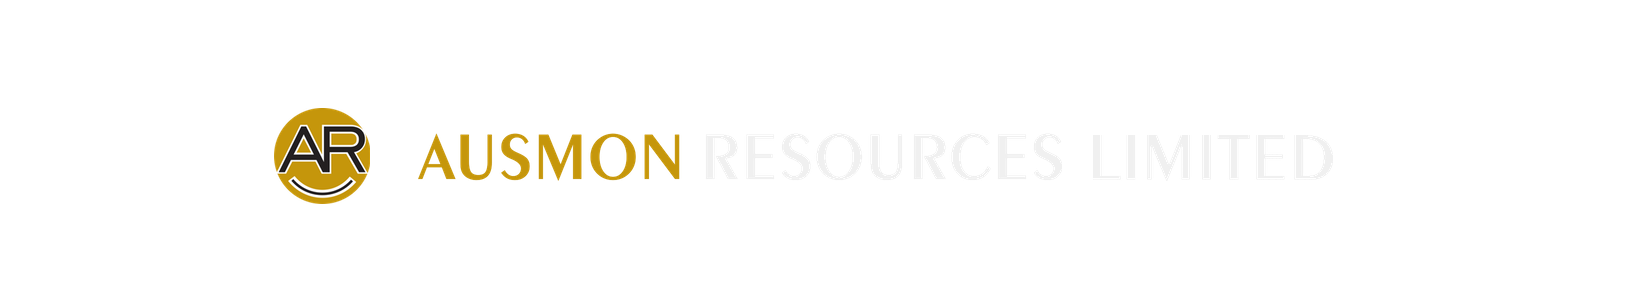 Ausmon Resources